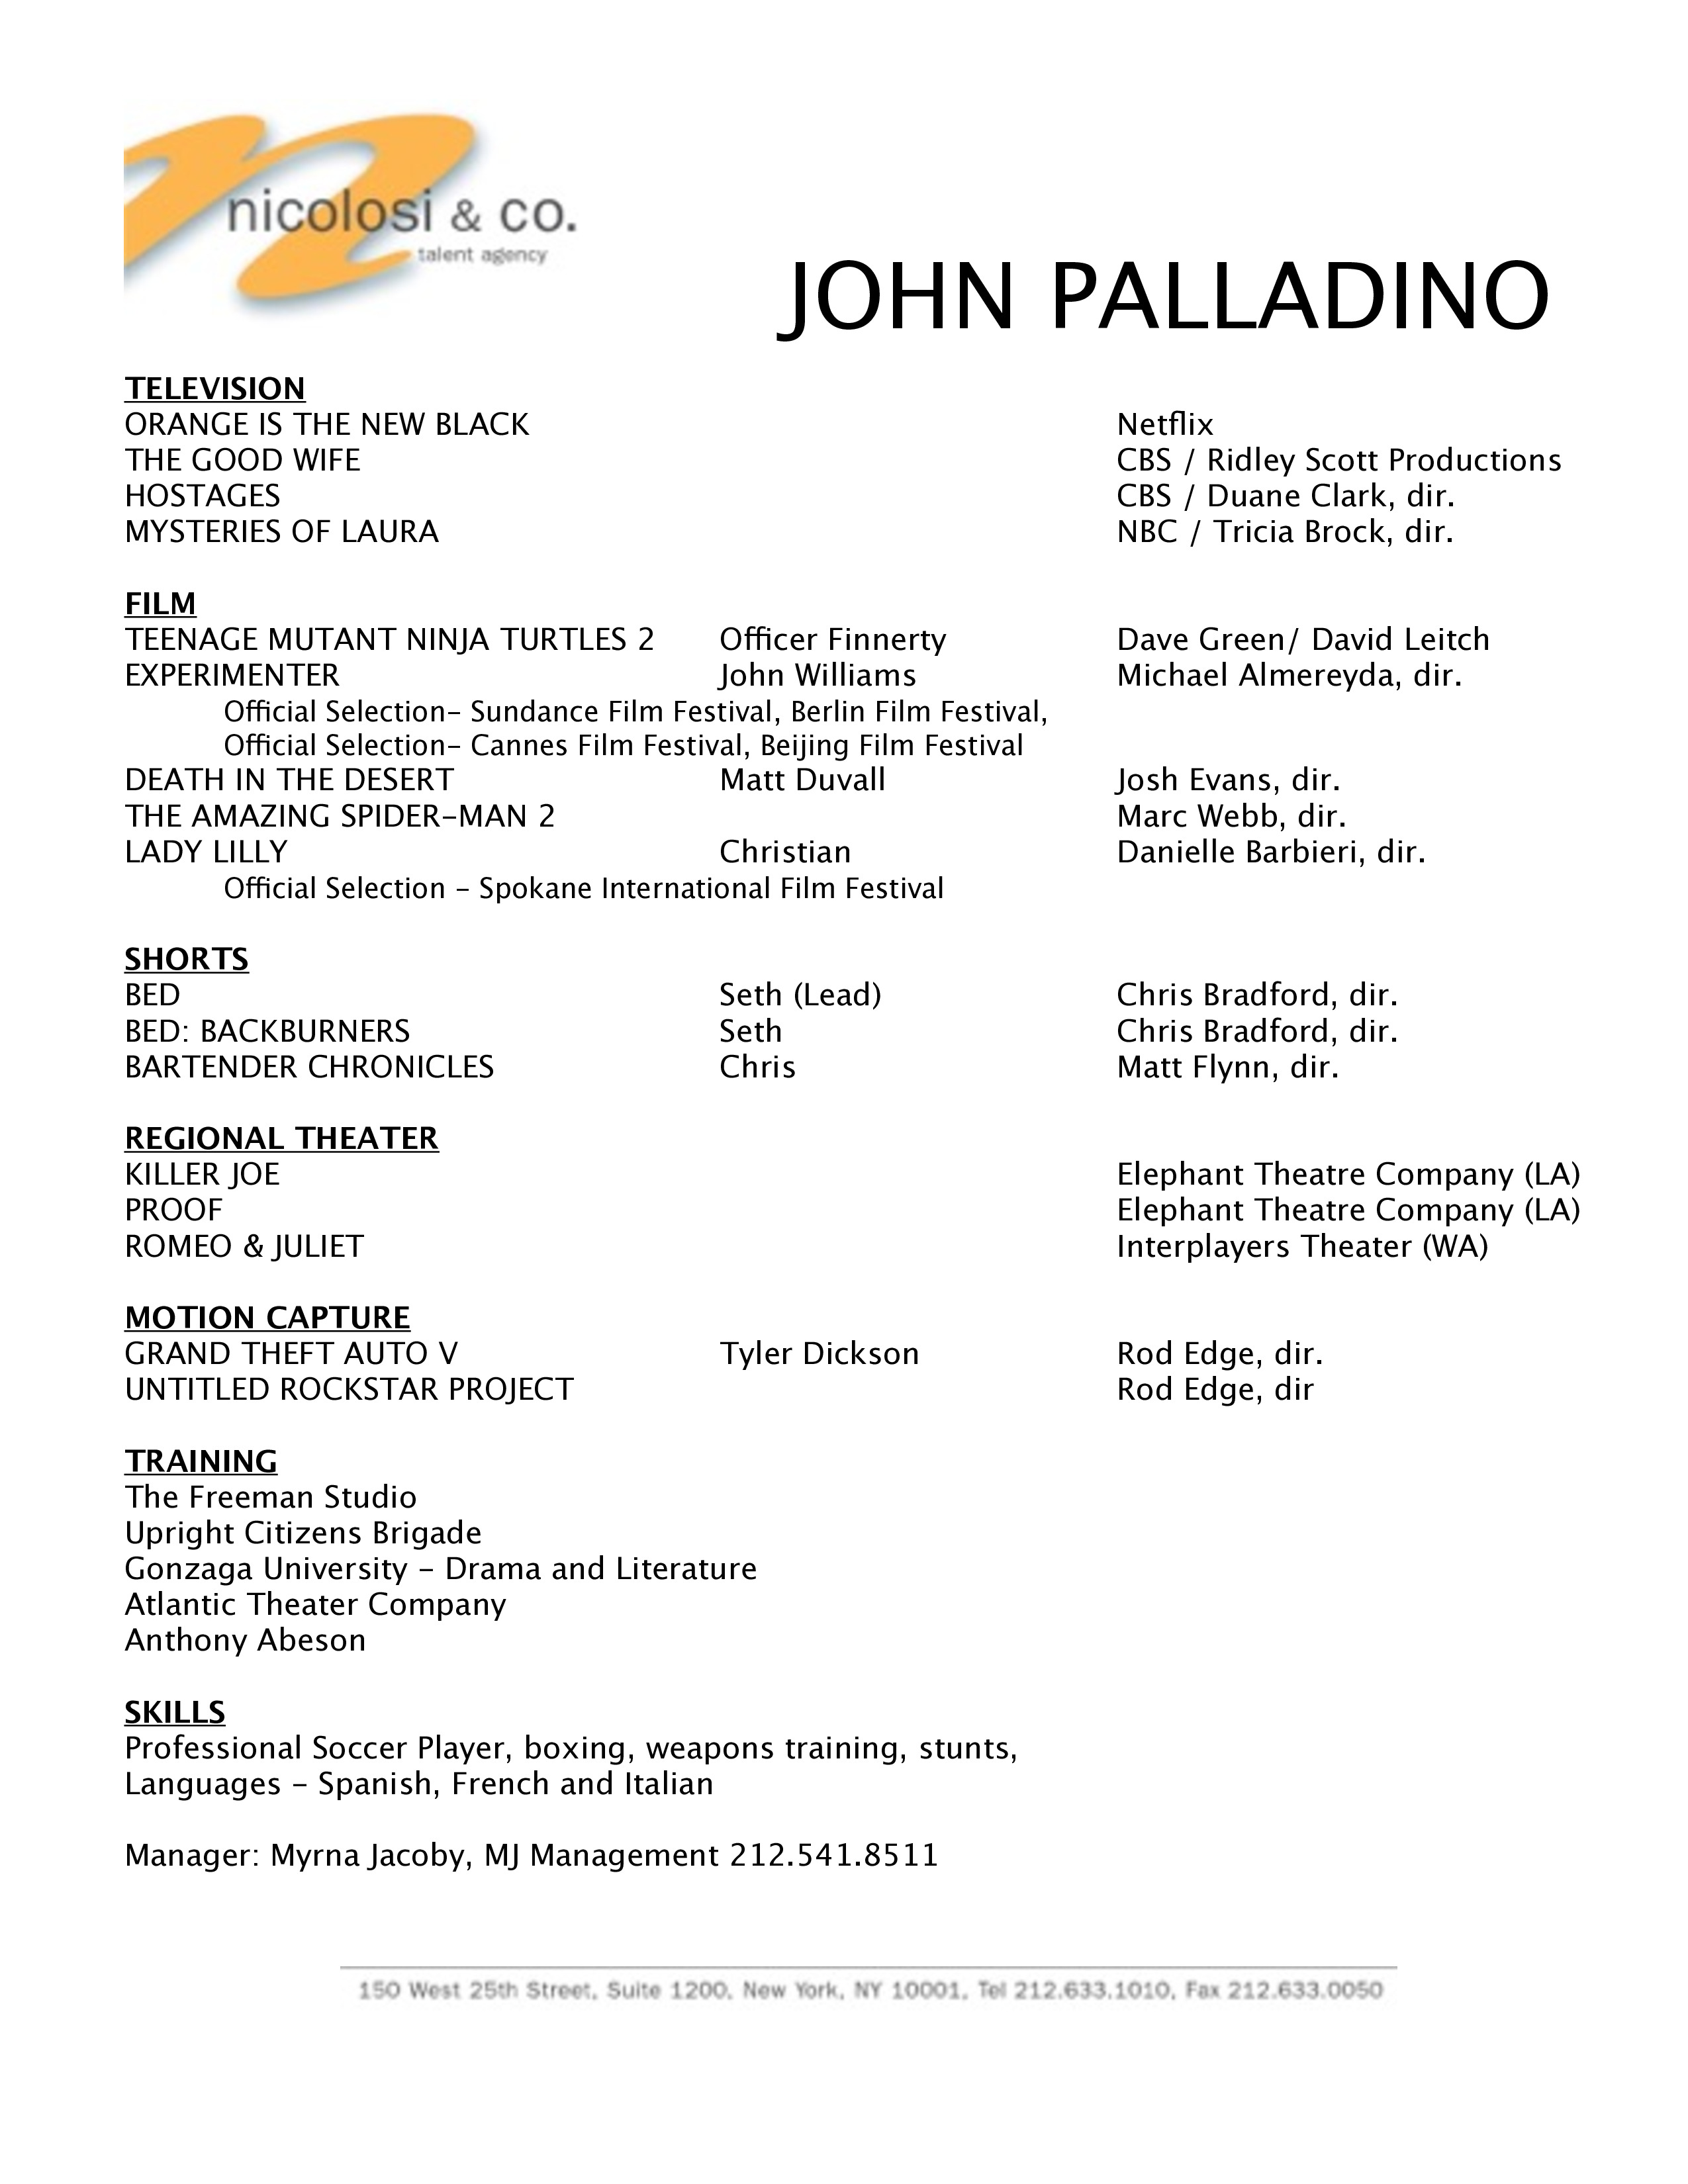 Talent Agent Resume Talent Agent Cover Letter Sample Images Cover